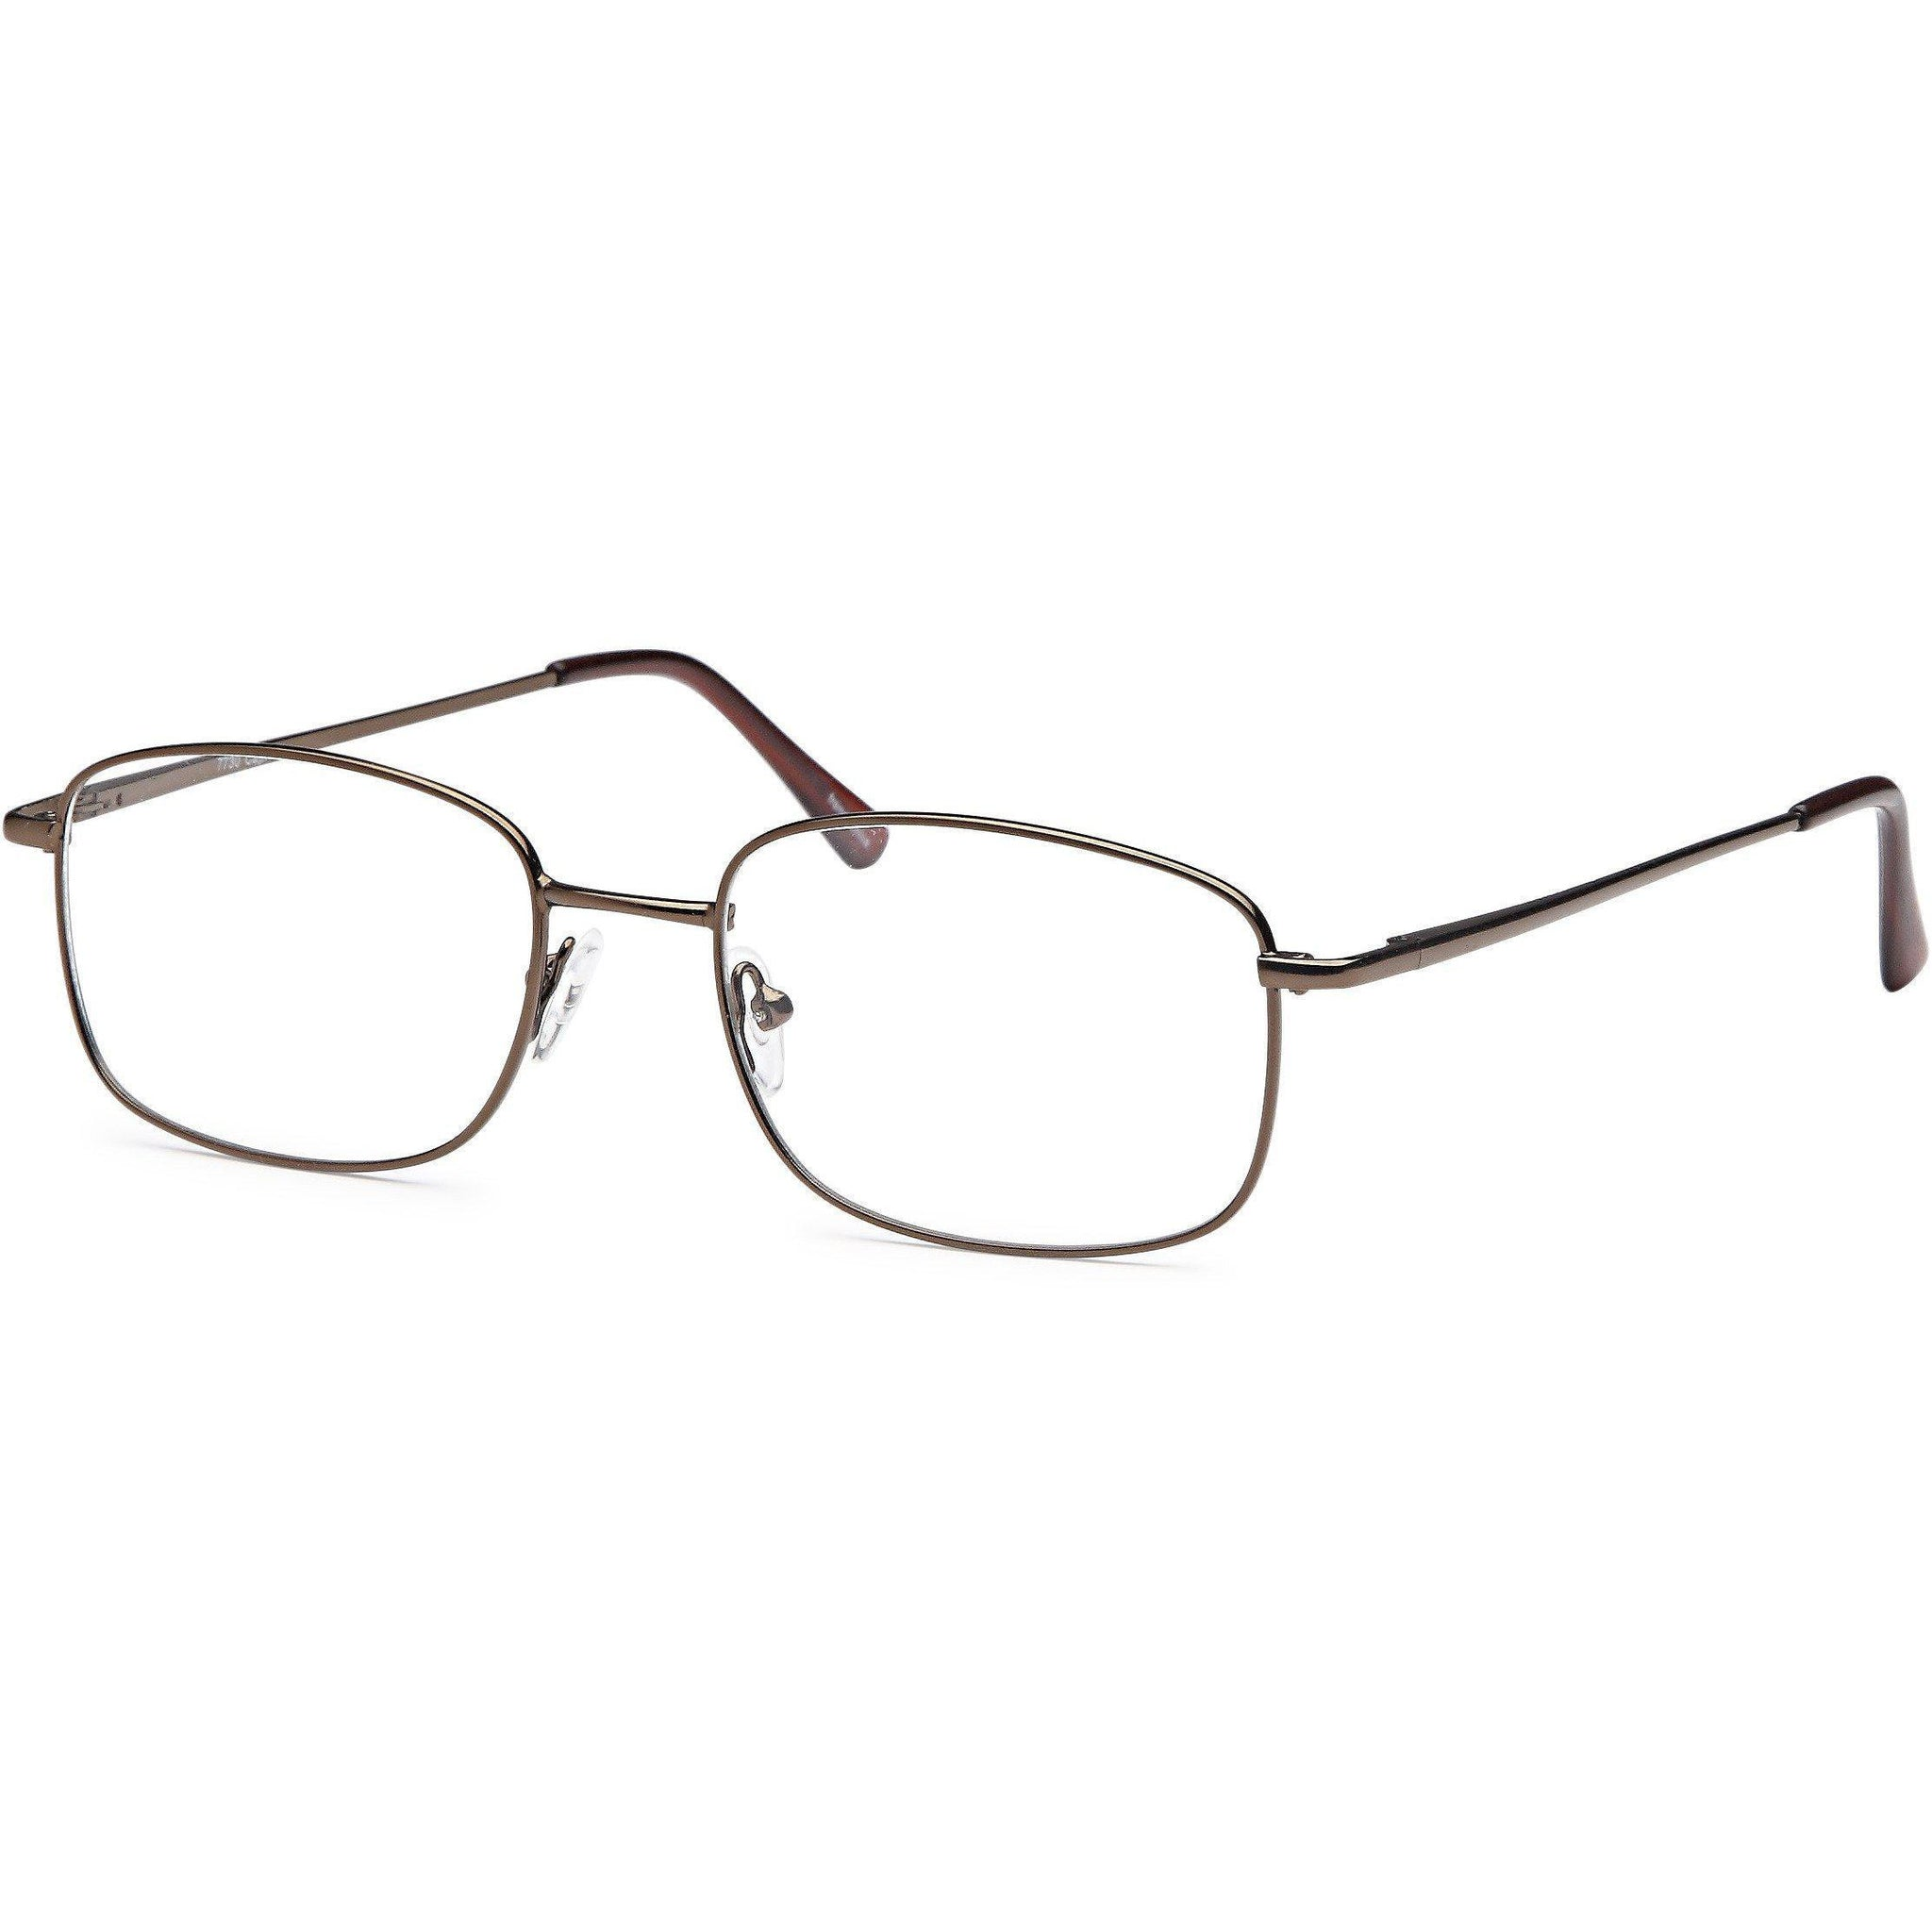 Appletree Prescription Glasses 7730 Eyeglasses Frame